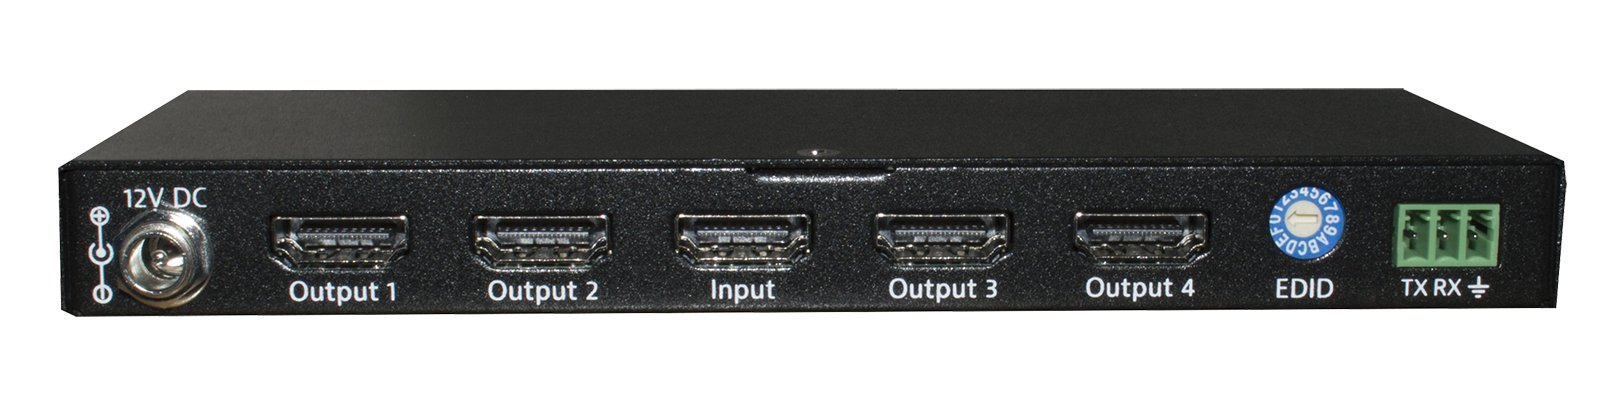 1x4 HDMI 2.0 18G Distribution Amplifier Supports 4K60 4:4:4